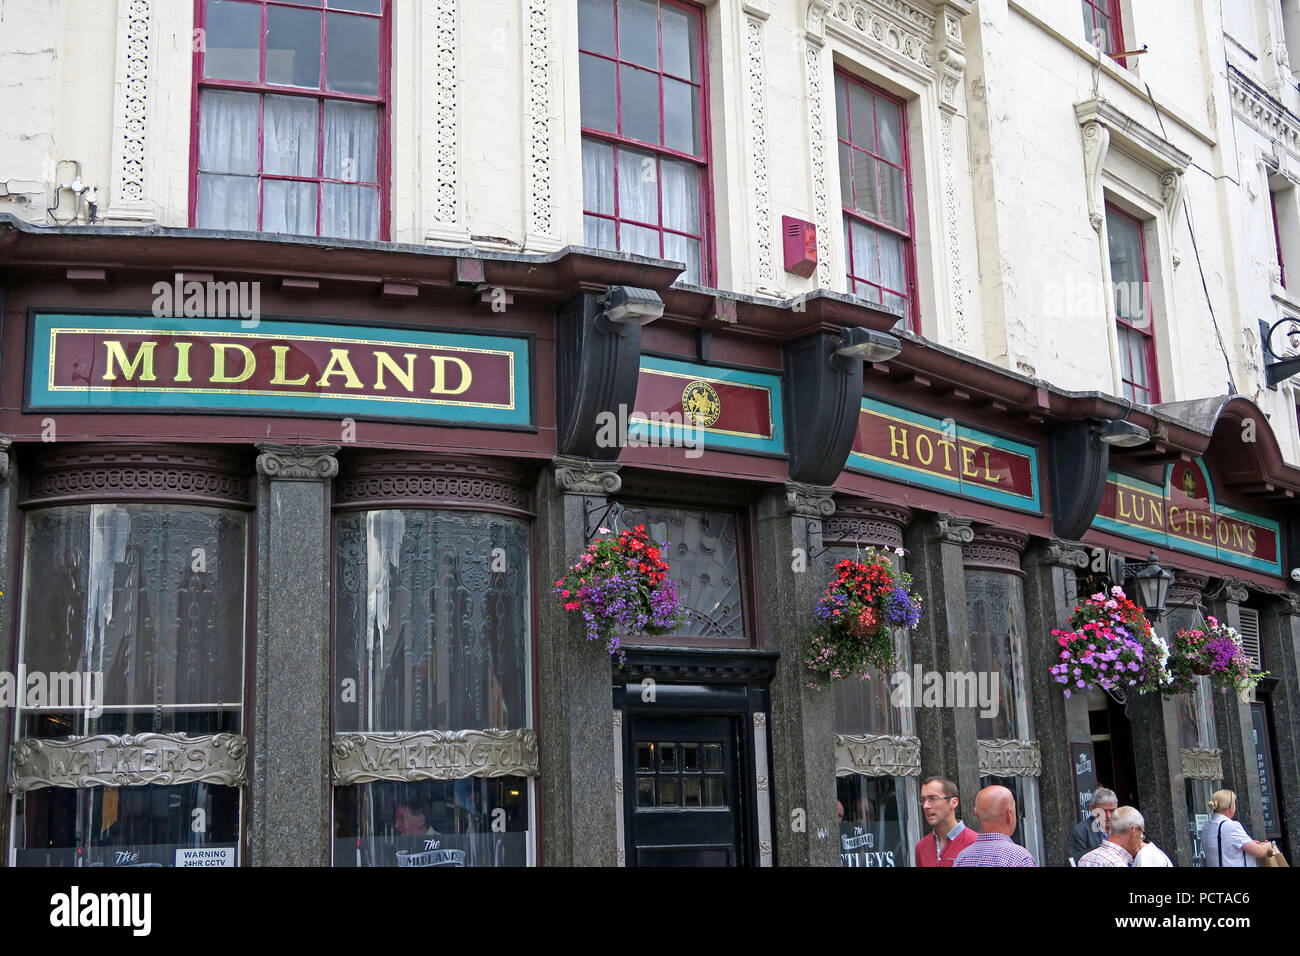 Midland Hotel Luncheons pub, 25 Ranelagh St, Liverpool, Merseyside, North West England, UK,  L1 1JP - Stock Image